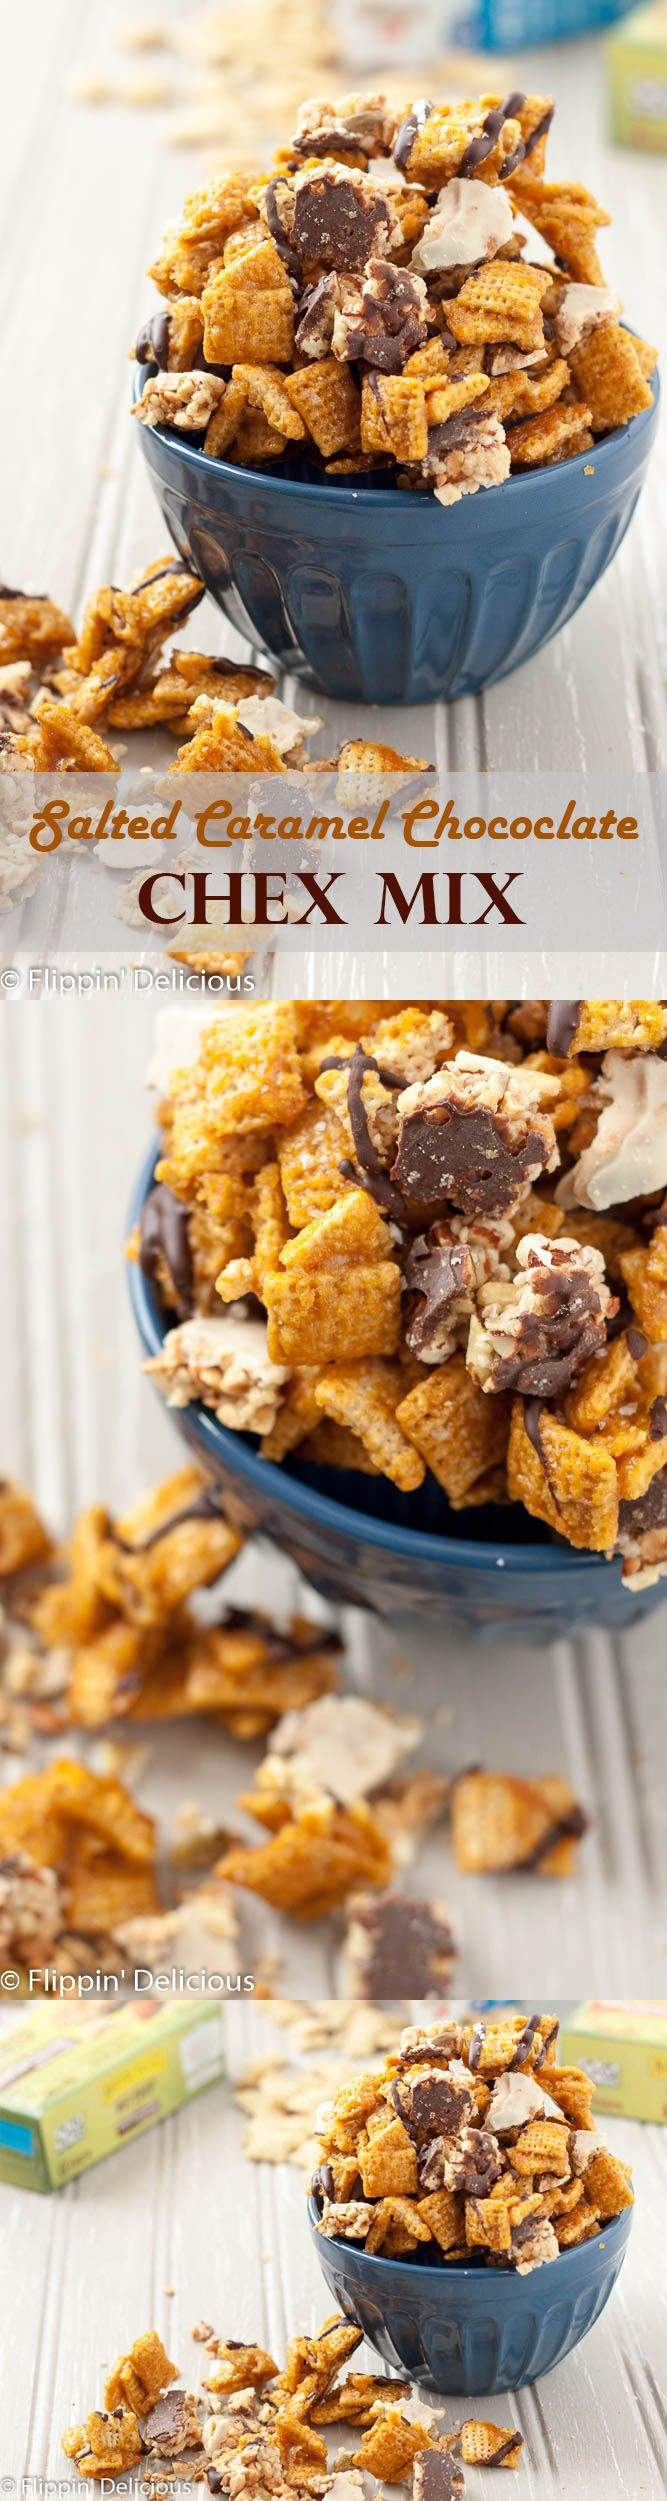 This Salted Caramel Chocolate Chex Mix makes the perfect indulgent late night snack, and it is naturally gluten-free! (Dairy-free option too.) #BeSnacksational AD @alberts